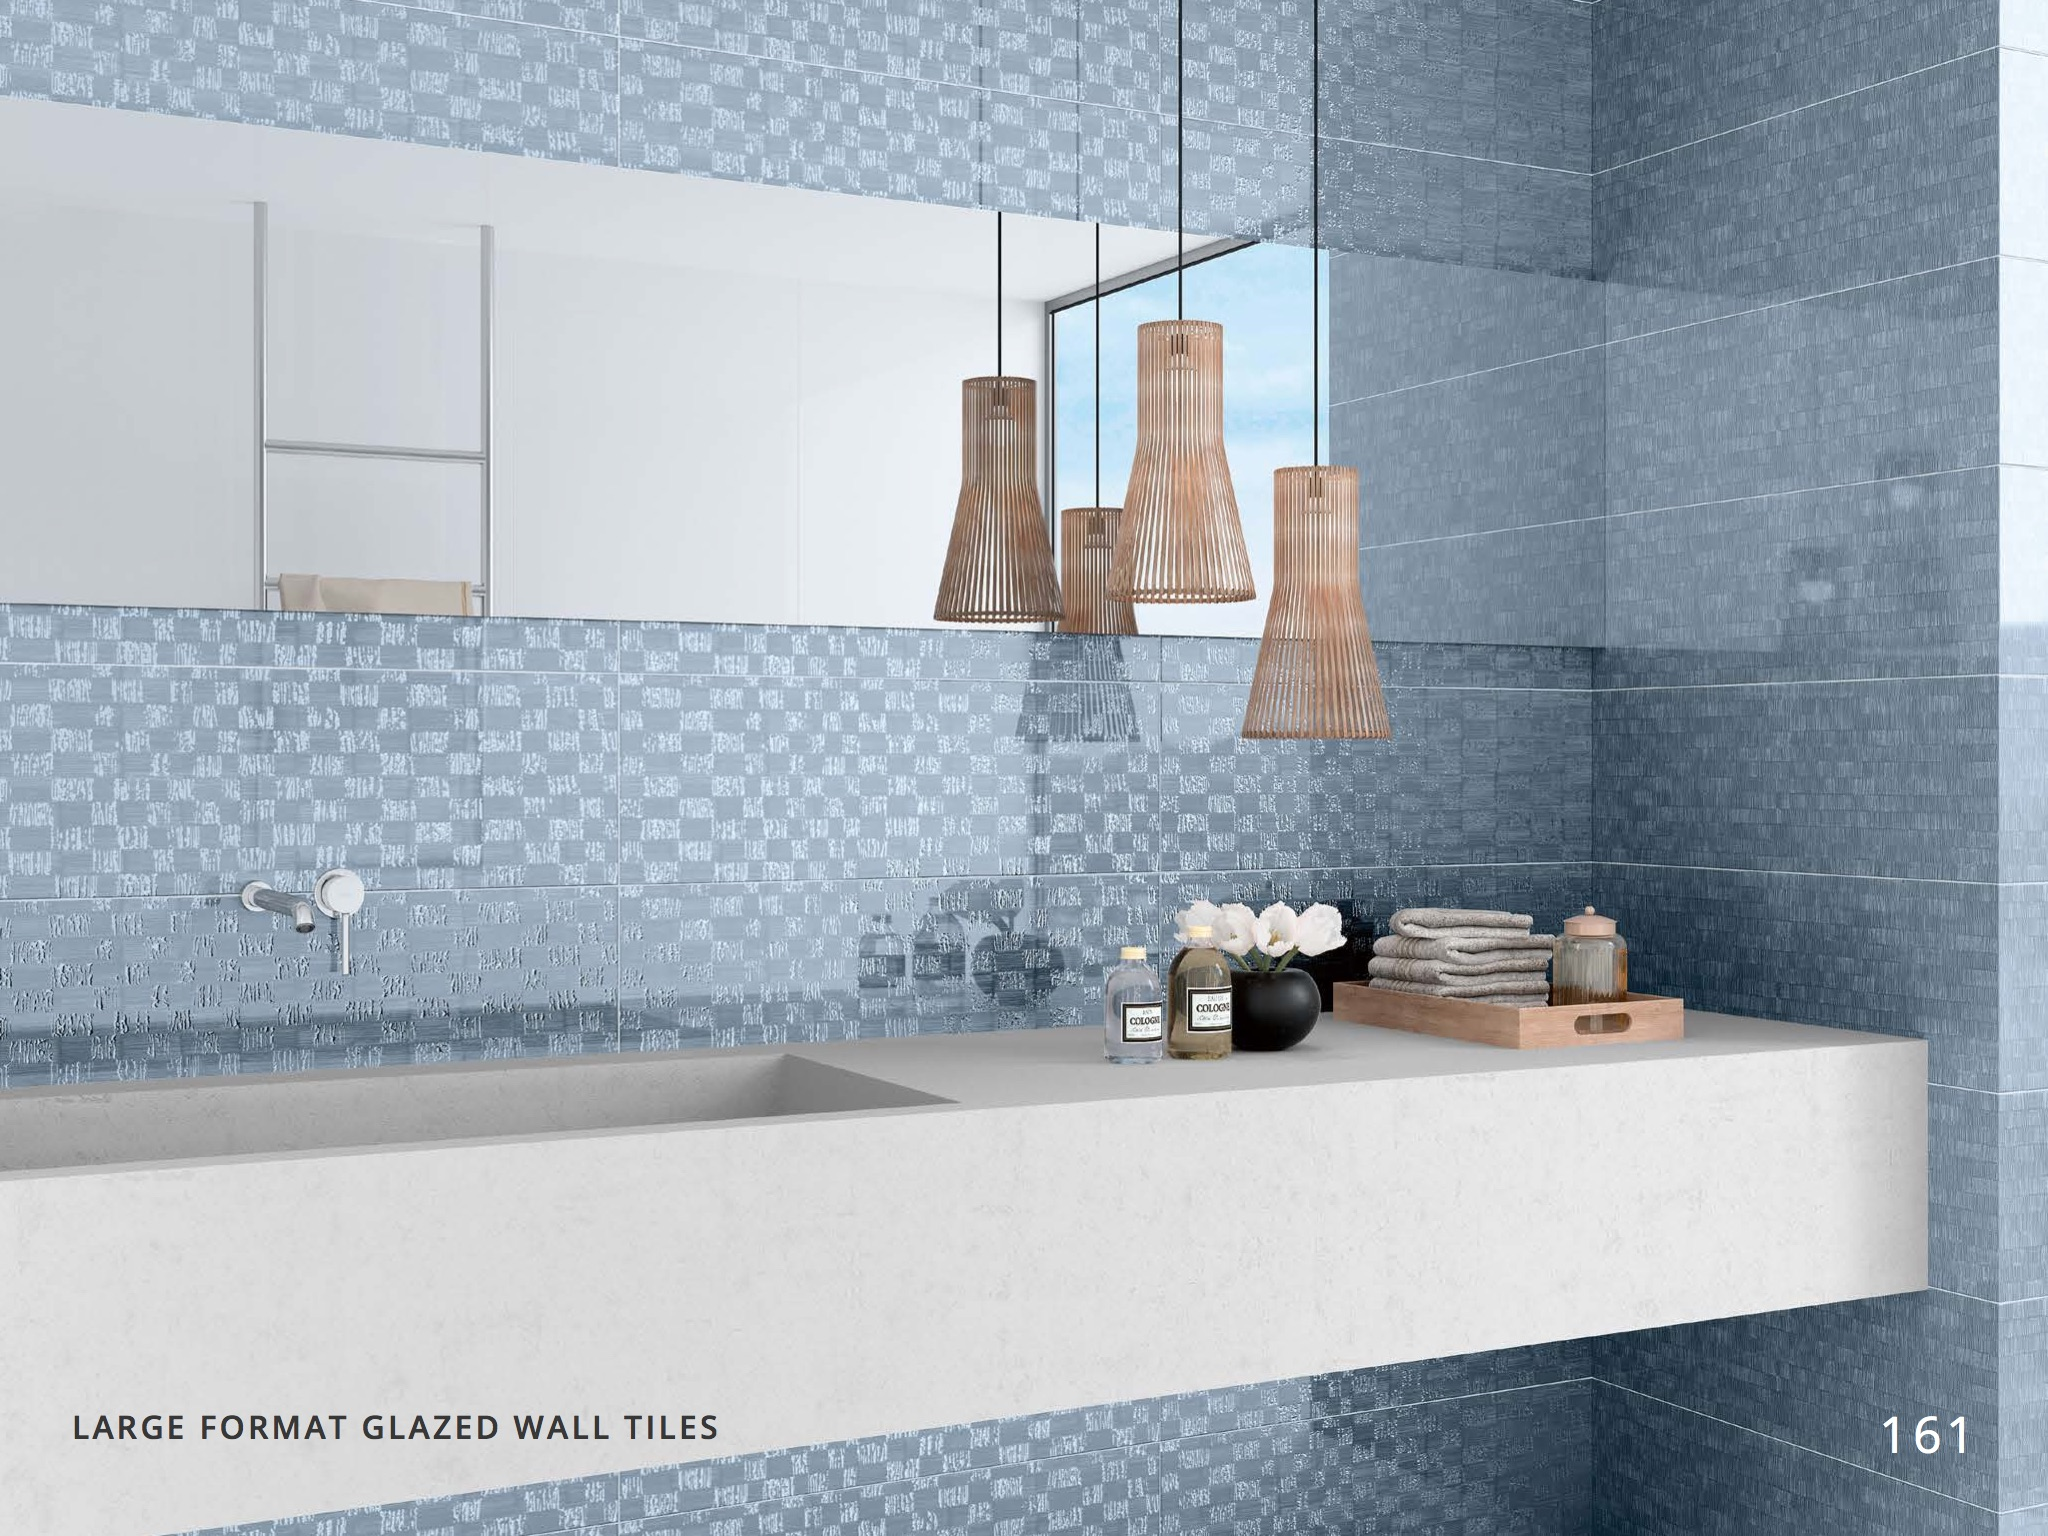 LARGE FORMAT GLAZED WALL TILES